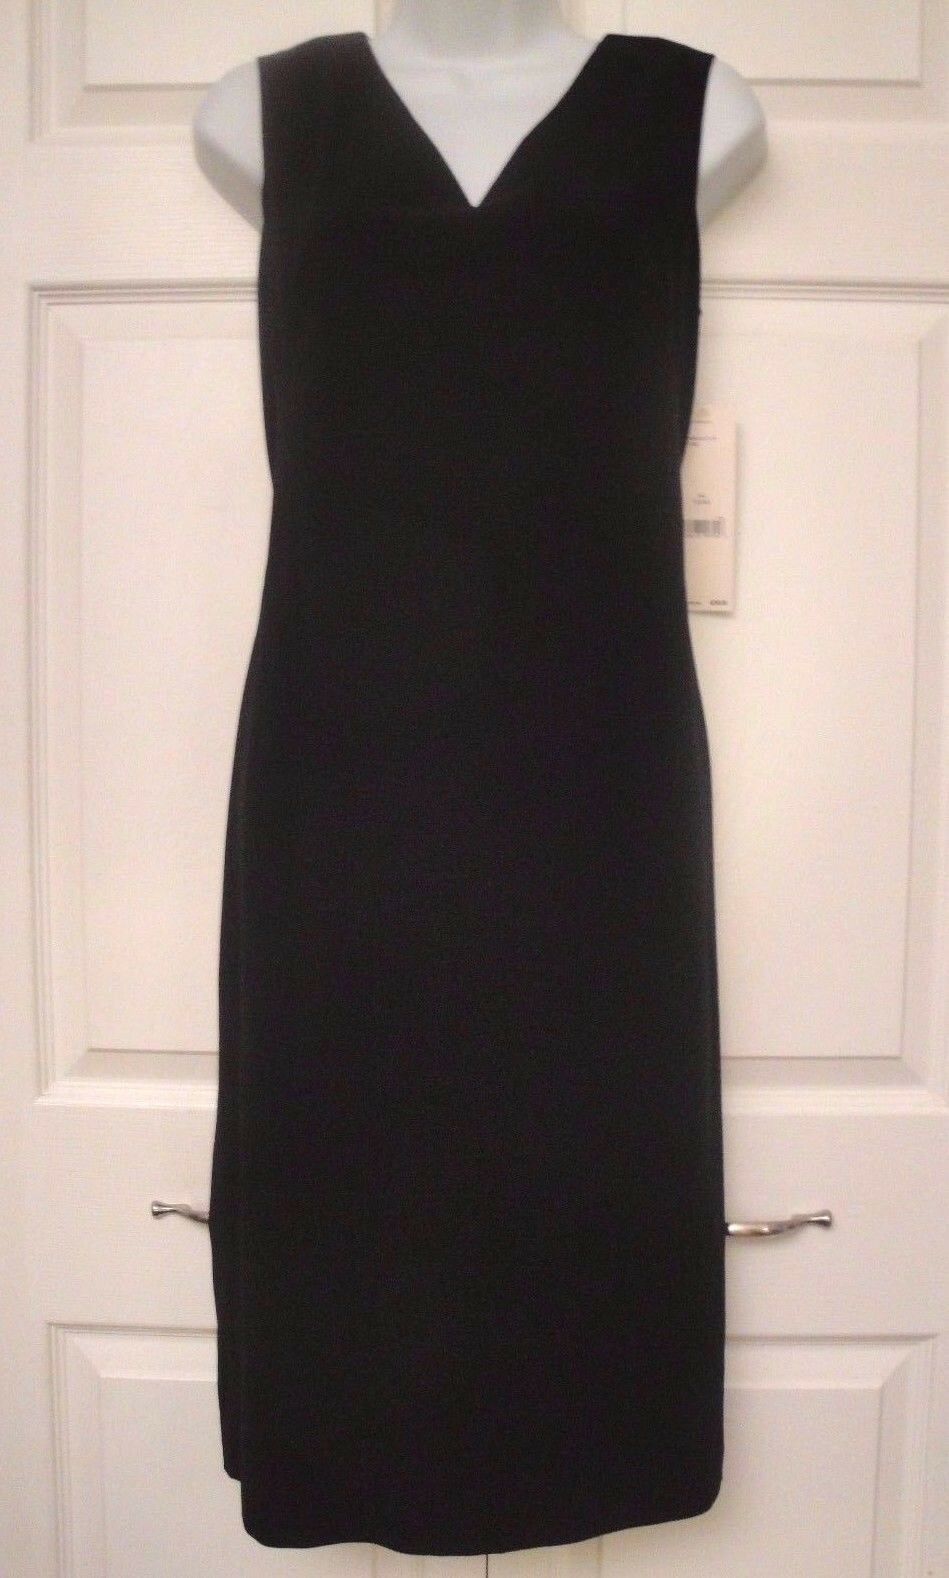 Emanuel Ungaro Black Fine Wool Dress Size 10 Fully Lined Ebay